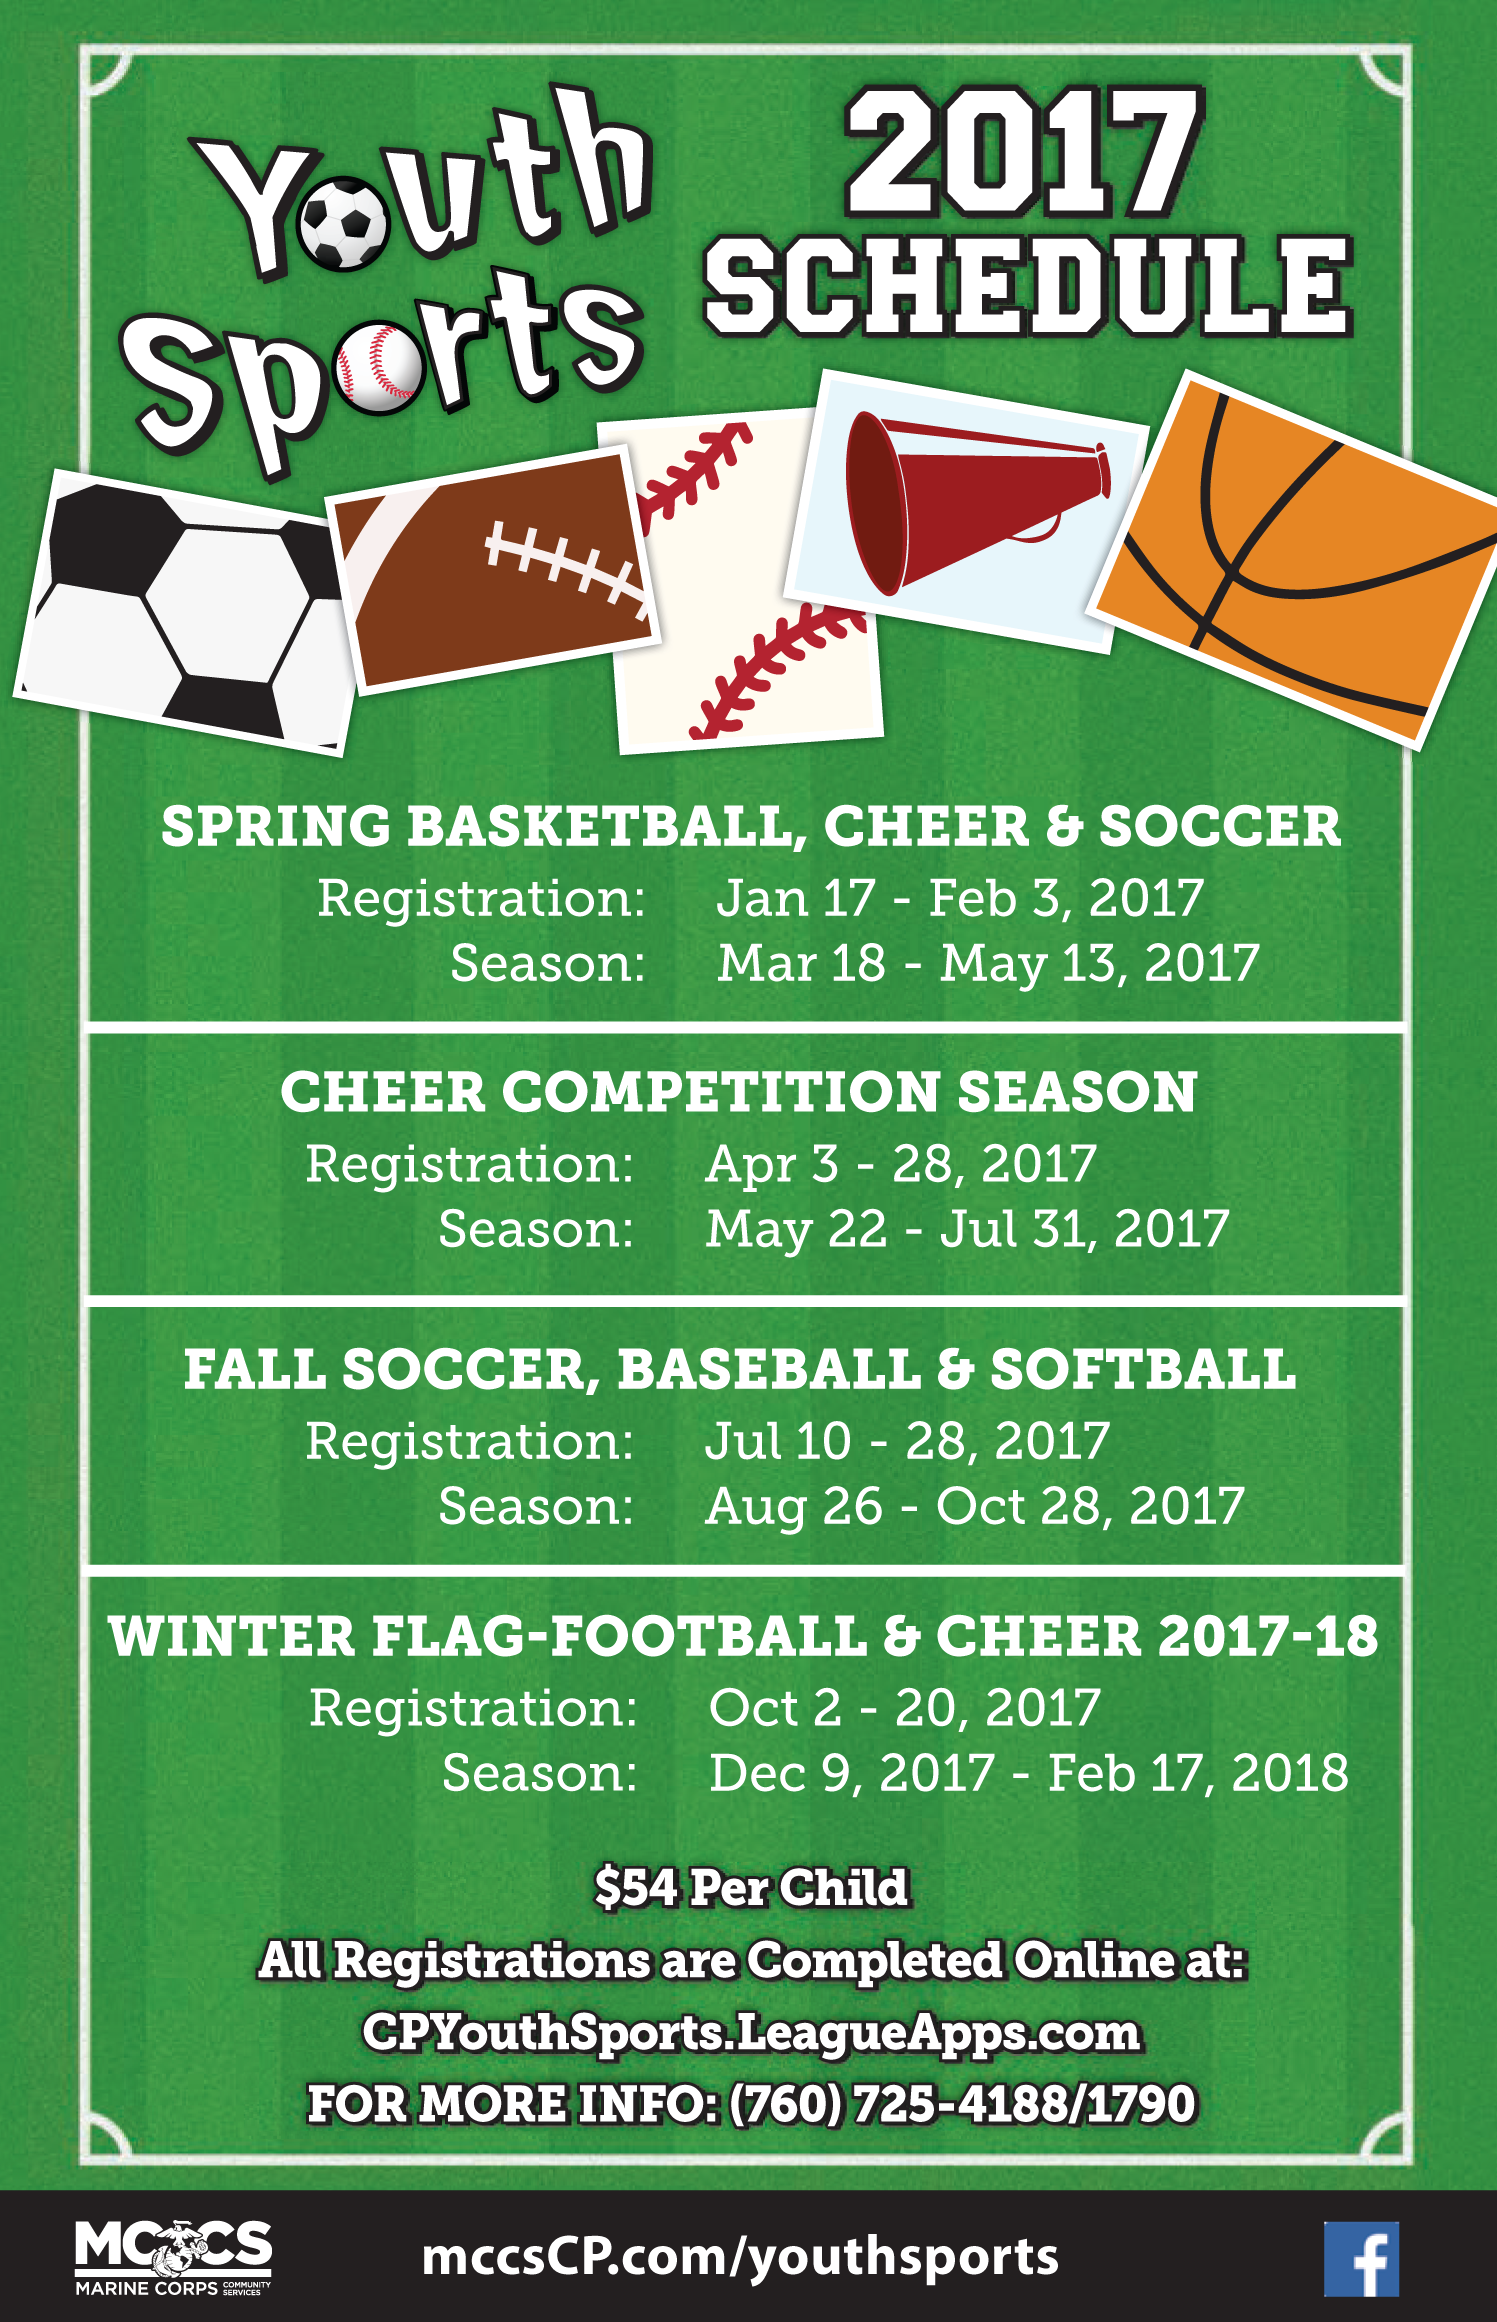 2017 Youth Sports Schedule